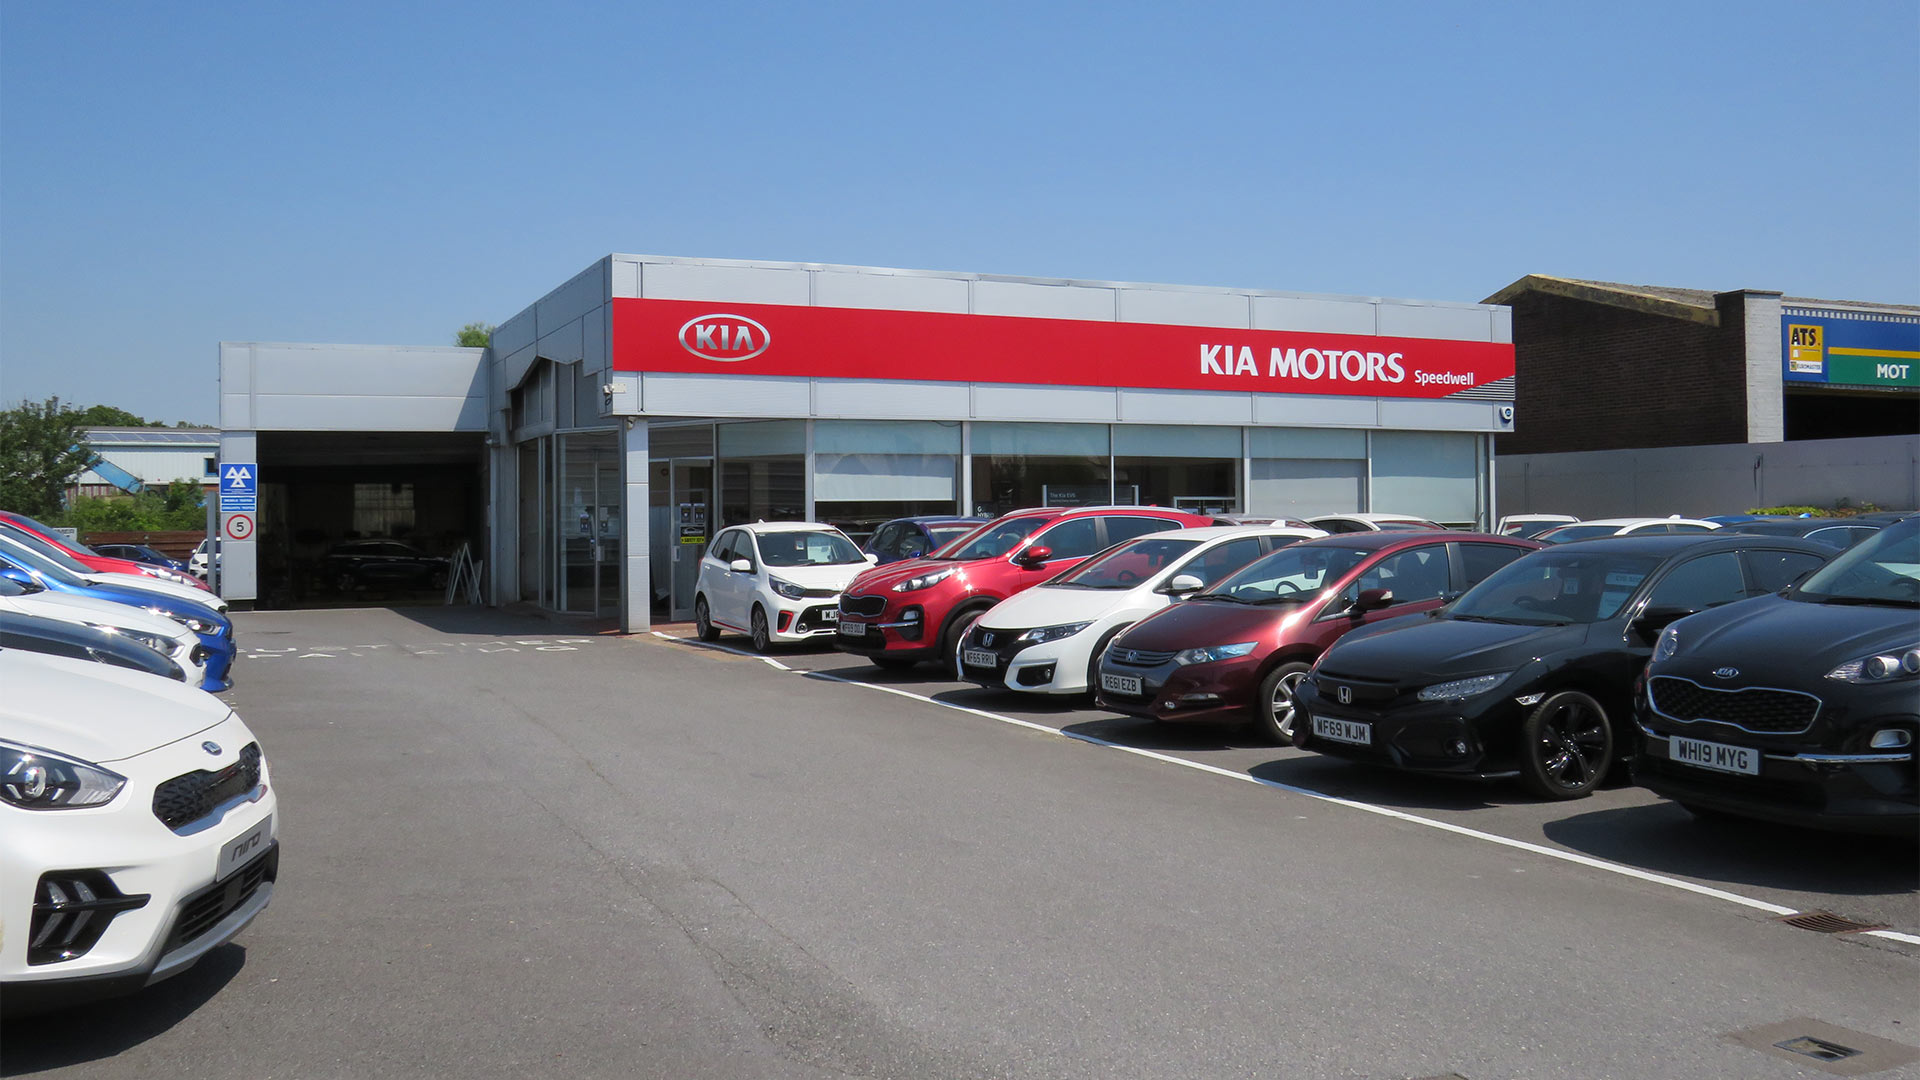 Visit Speedwell Kia in Paignton | New & used car sales, car servicing, parts and accessories